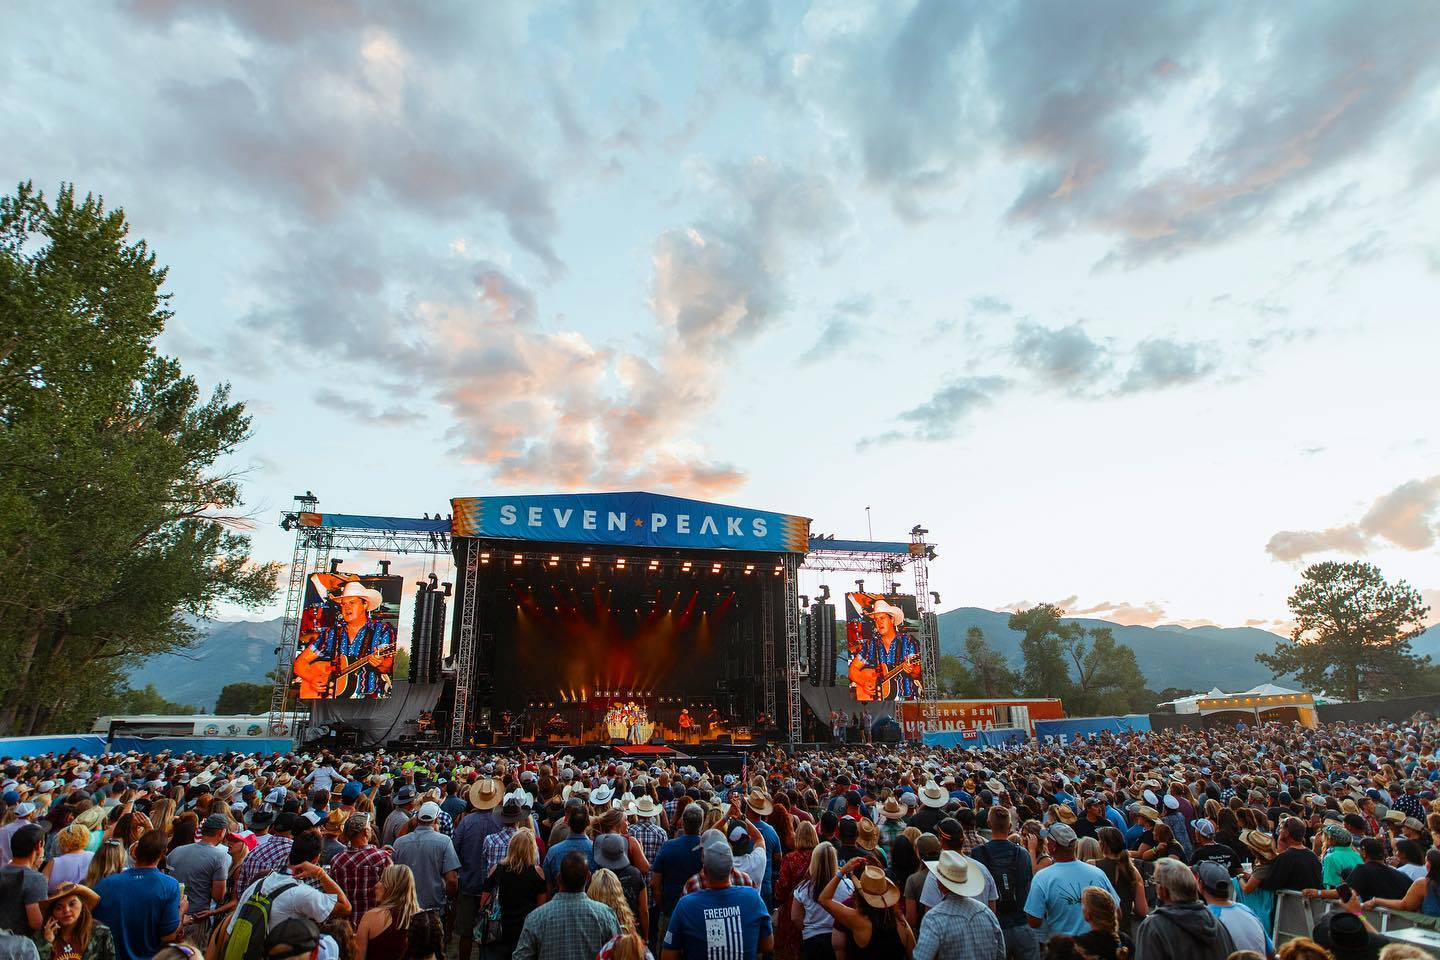 Image of the stage and crowd at the Seven Peaks Festival in Buena Vista, Colorado